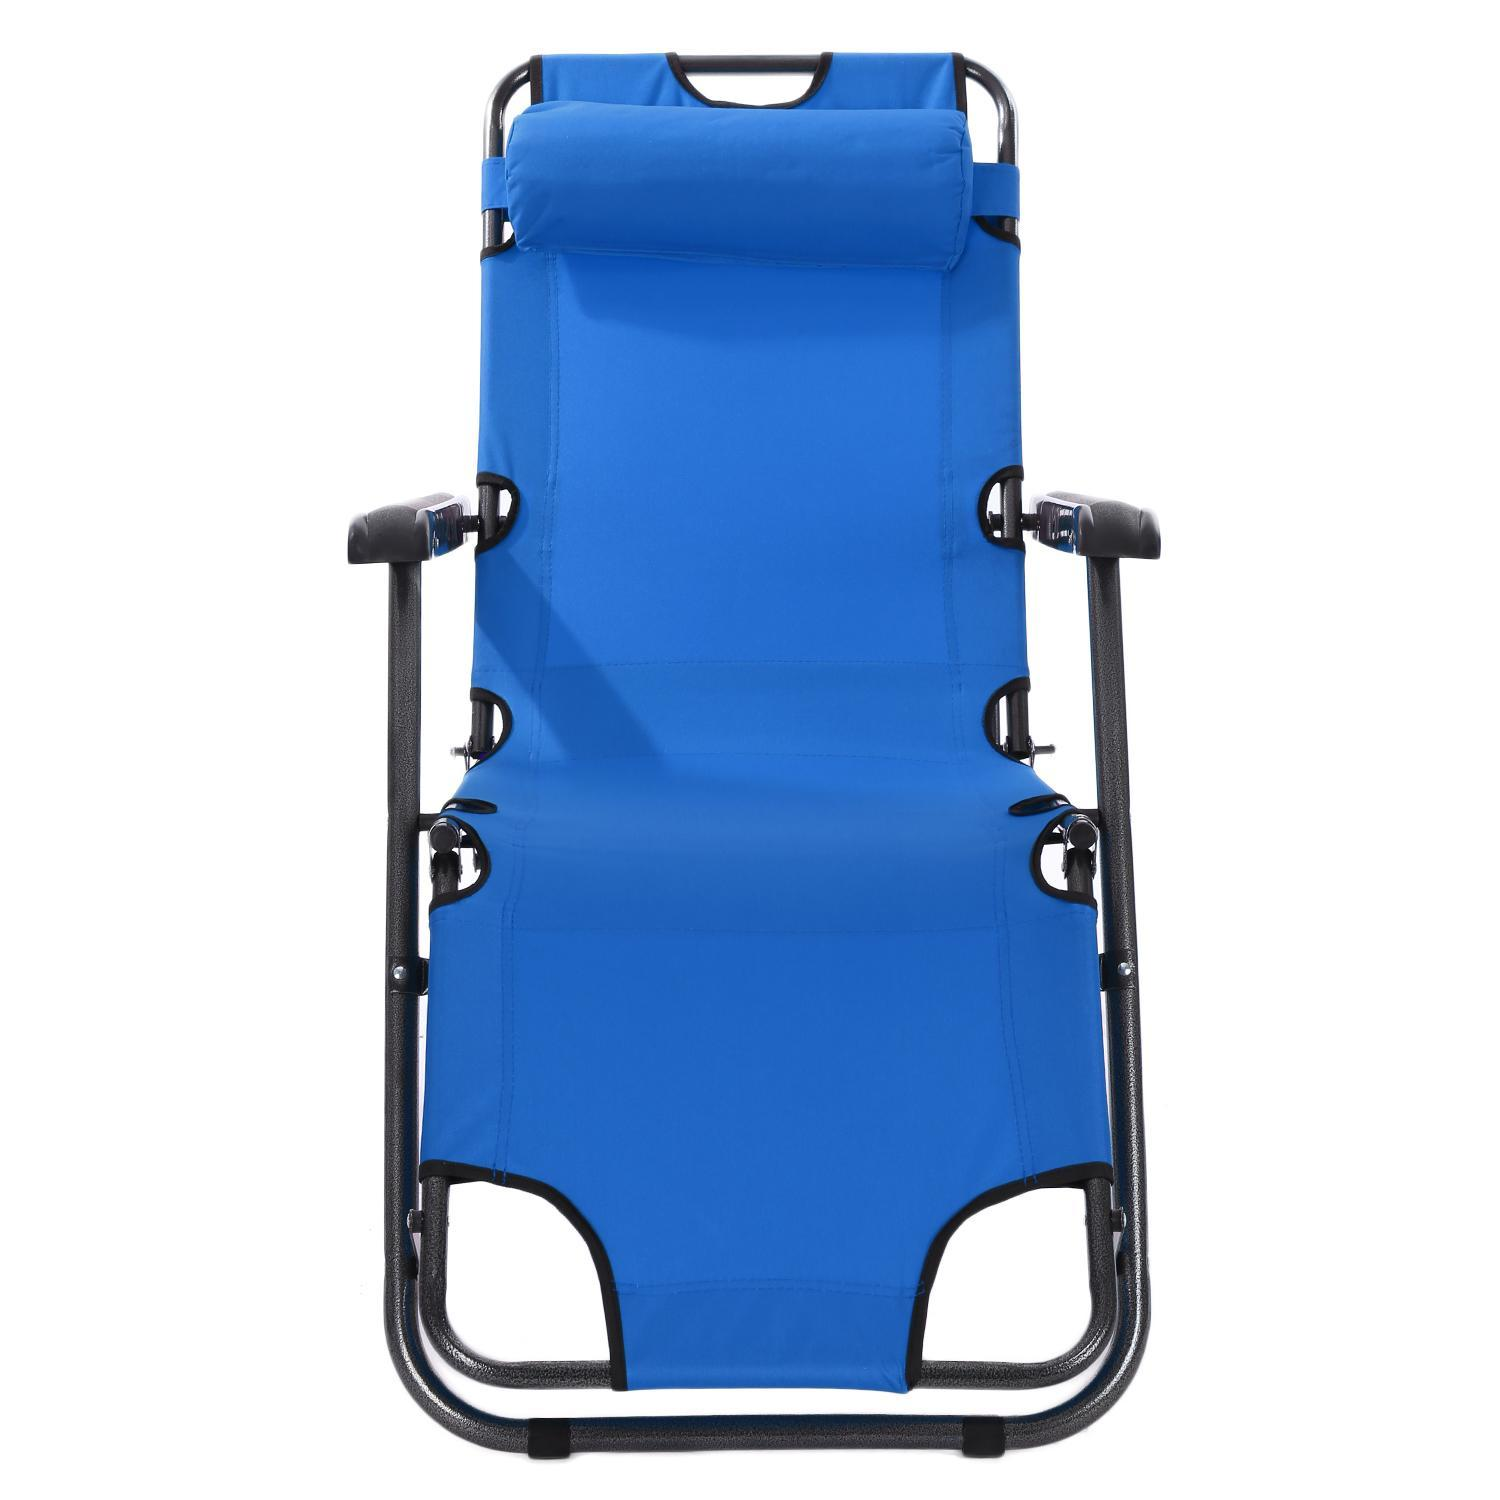 Outdoor furniture 178cm deck chair longer leisure folding beach chair stool sling recliner camping lounge chairs bed KRGL